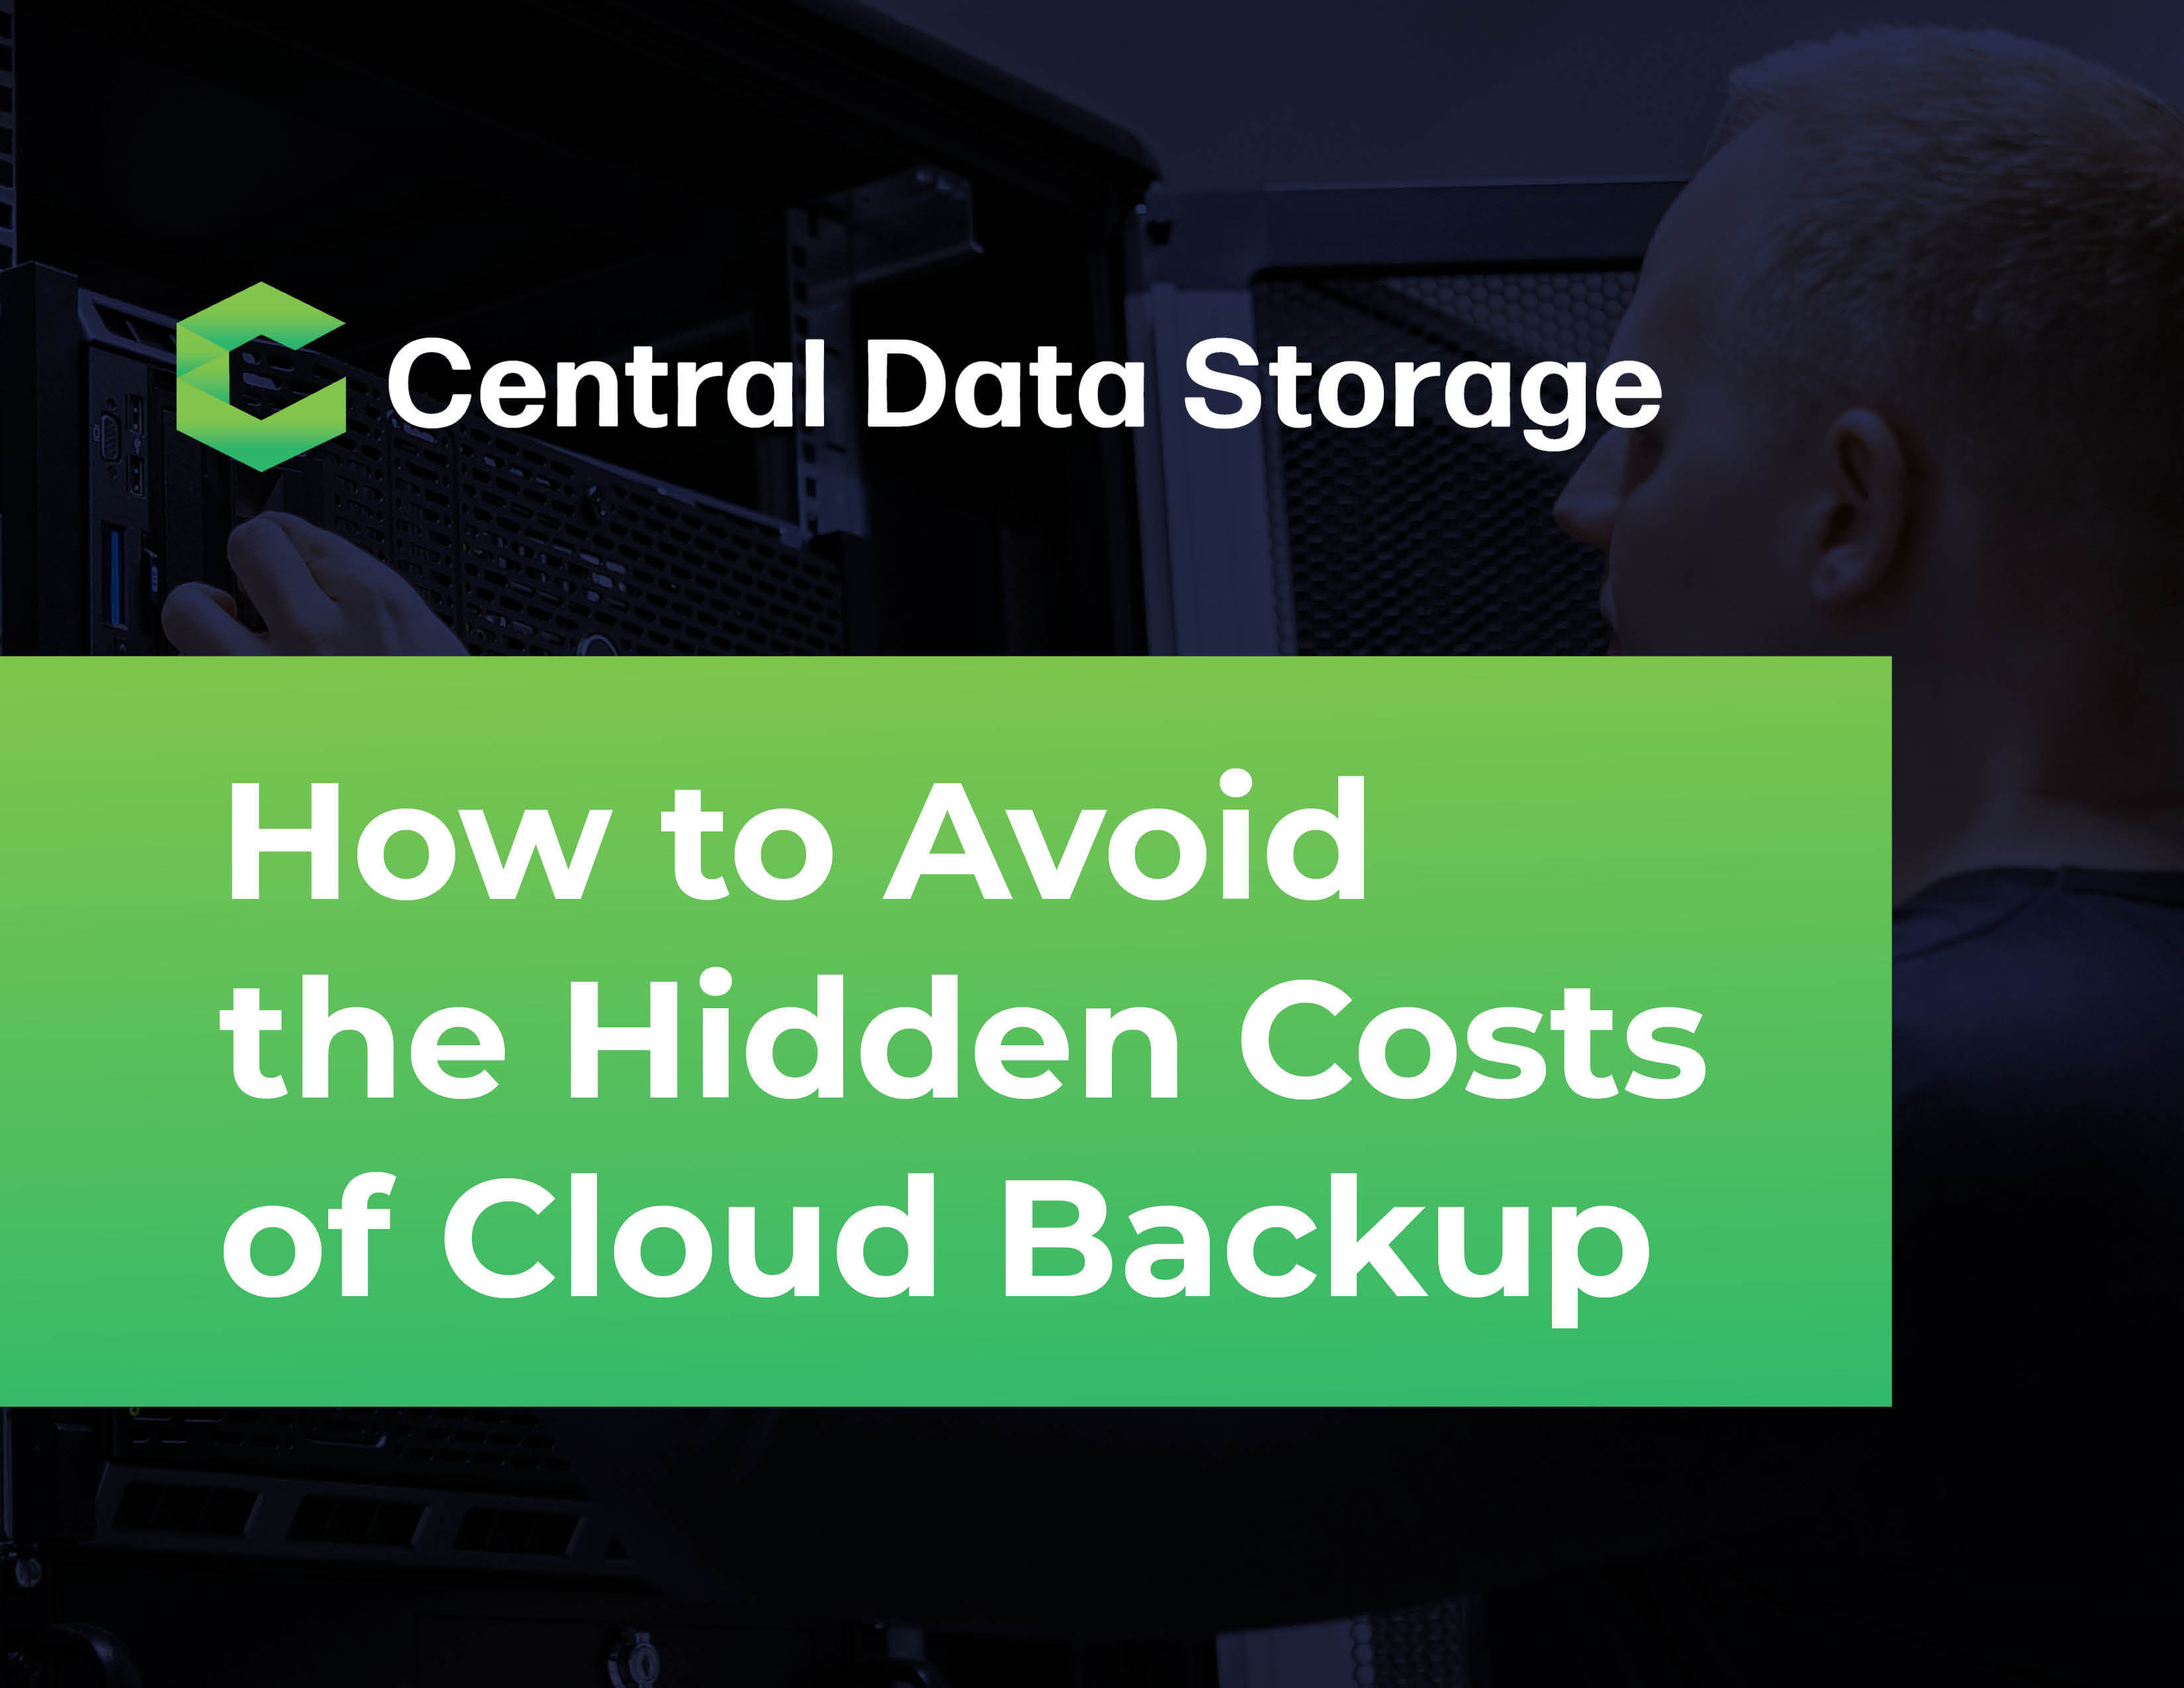 How to Avoid the Hidden Costs of Cloud